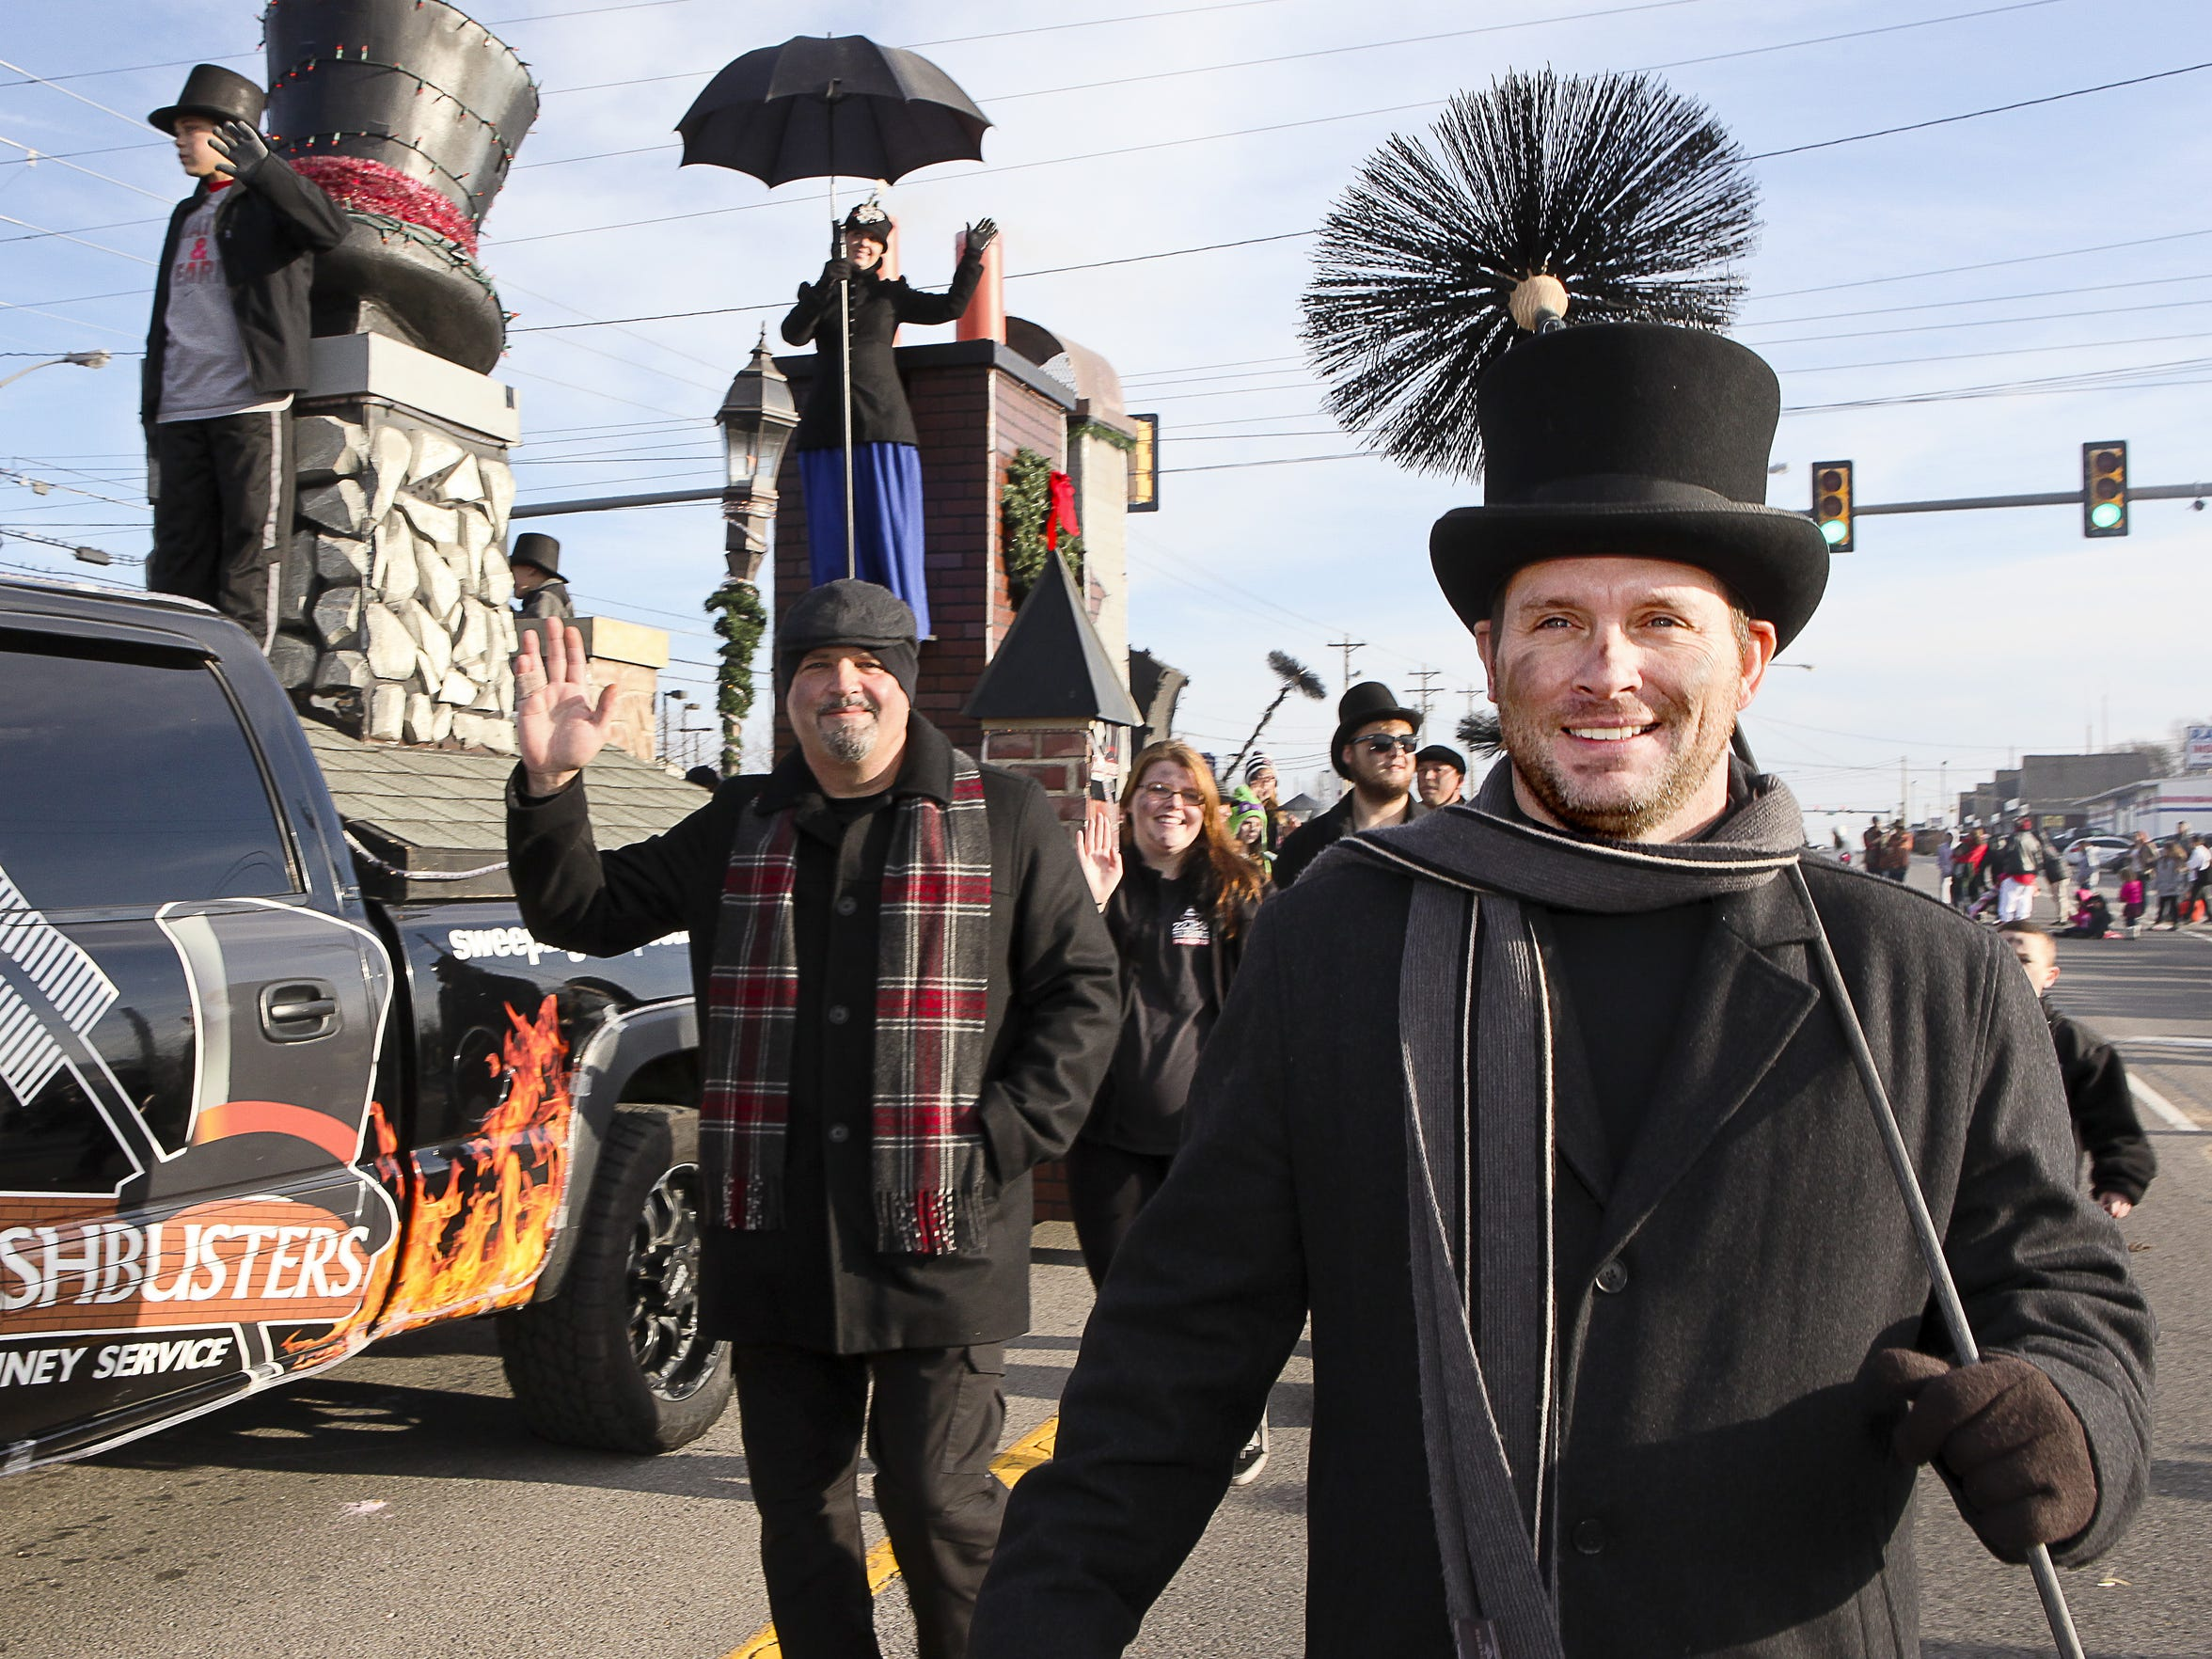 Chimney sweep Mark Stoner leads his fellow sweeps down Lowry Street beside a Mary Poppins-themed float in last year's Smyrna Christmas parade.